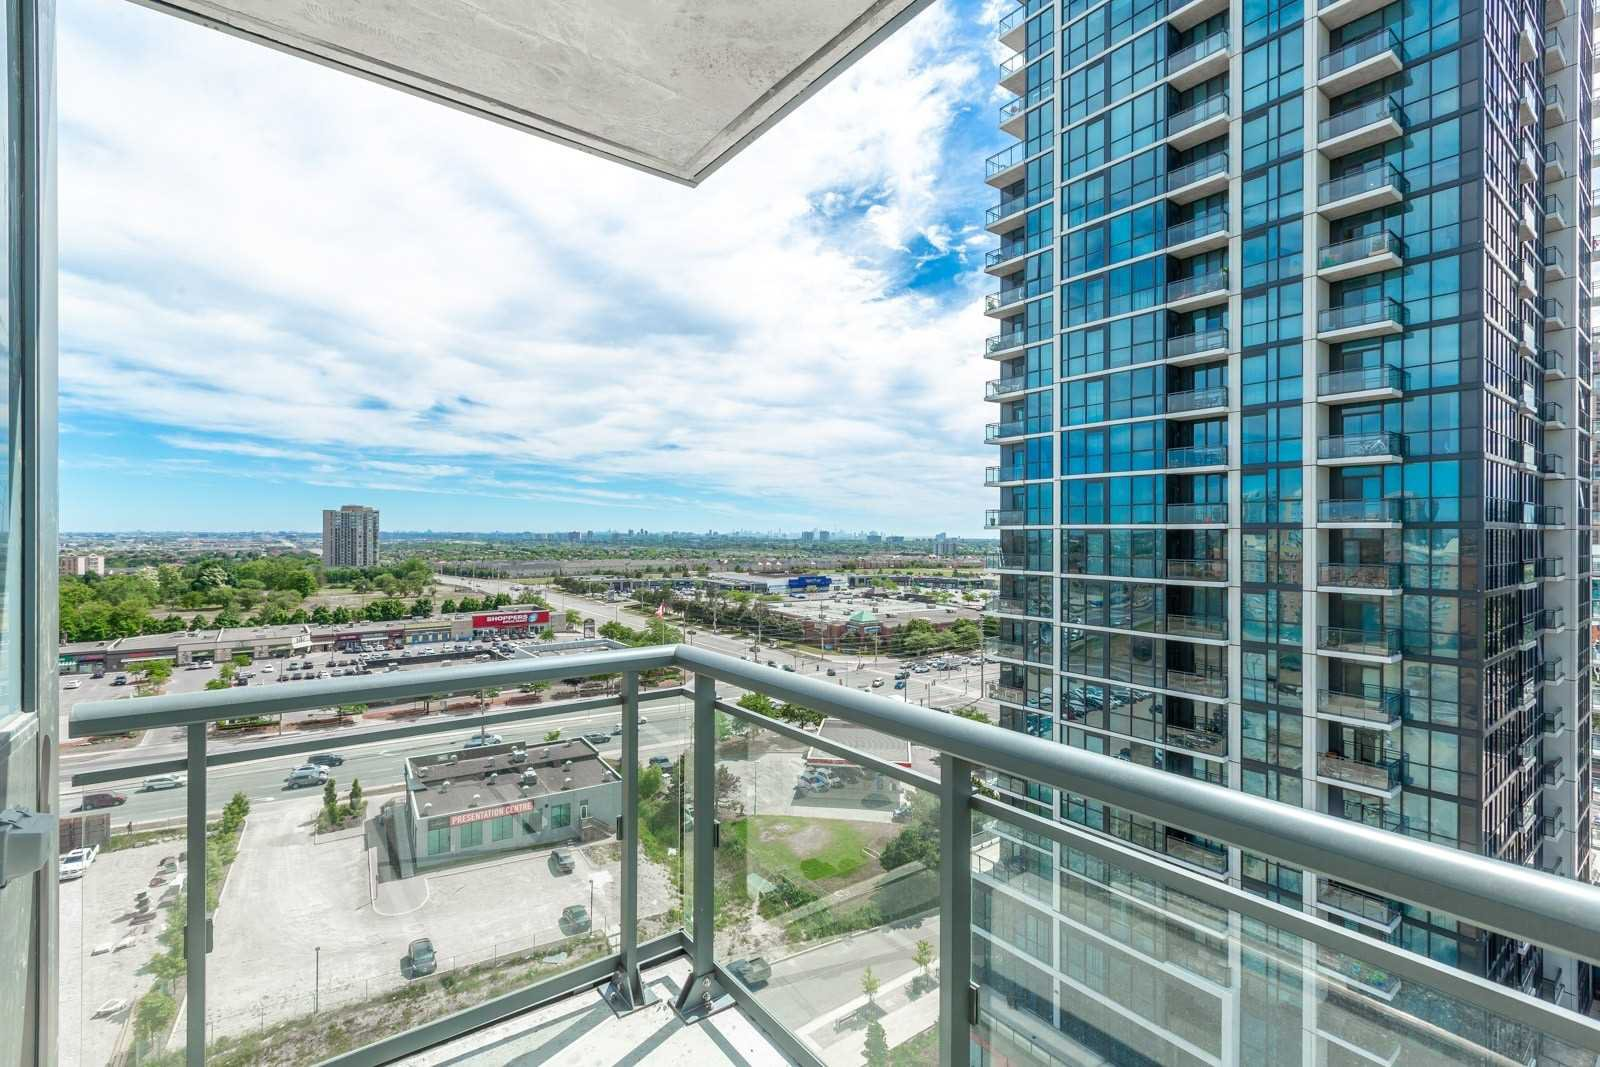 Photo 19: Photos: 1204 5025 Four Springs Avenue in Mississauga: Hurontario Condo for lease : MLS®# W4582092